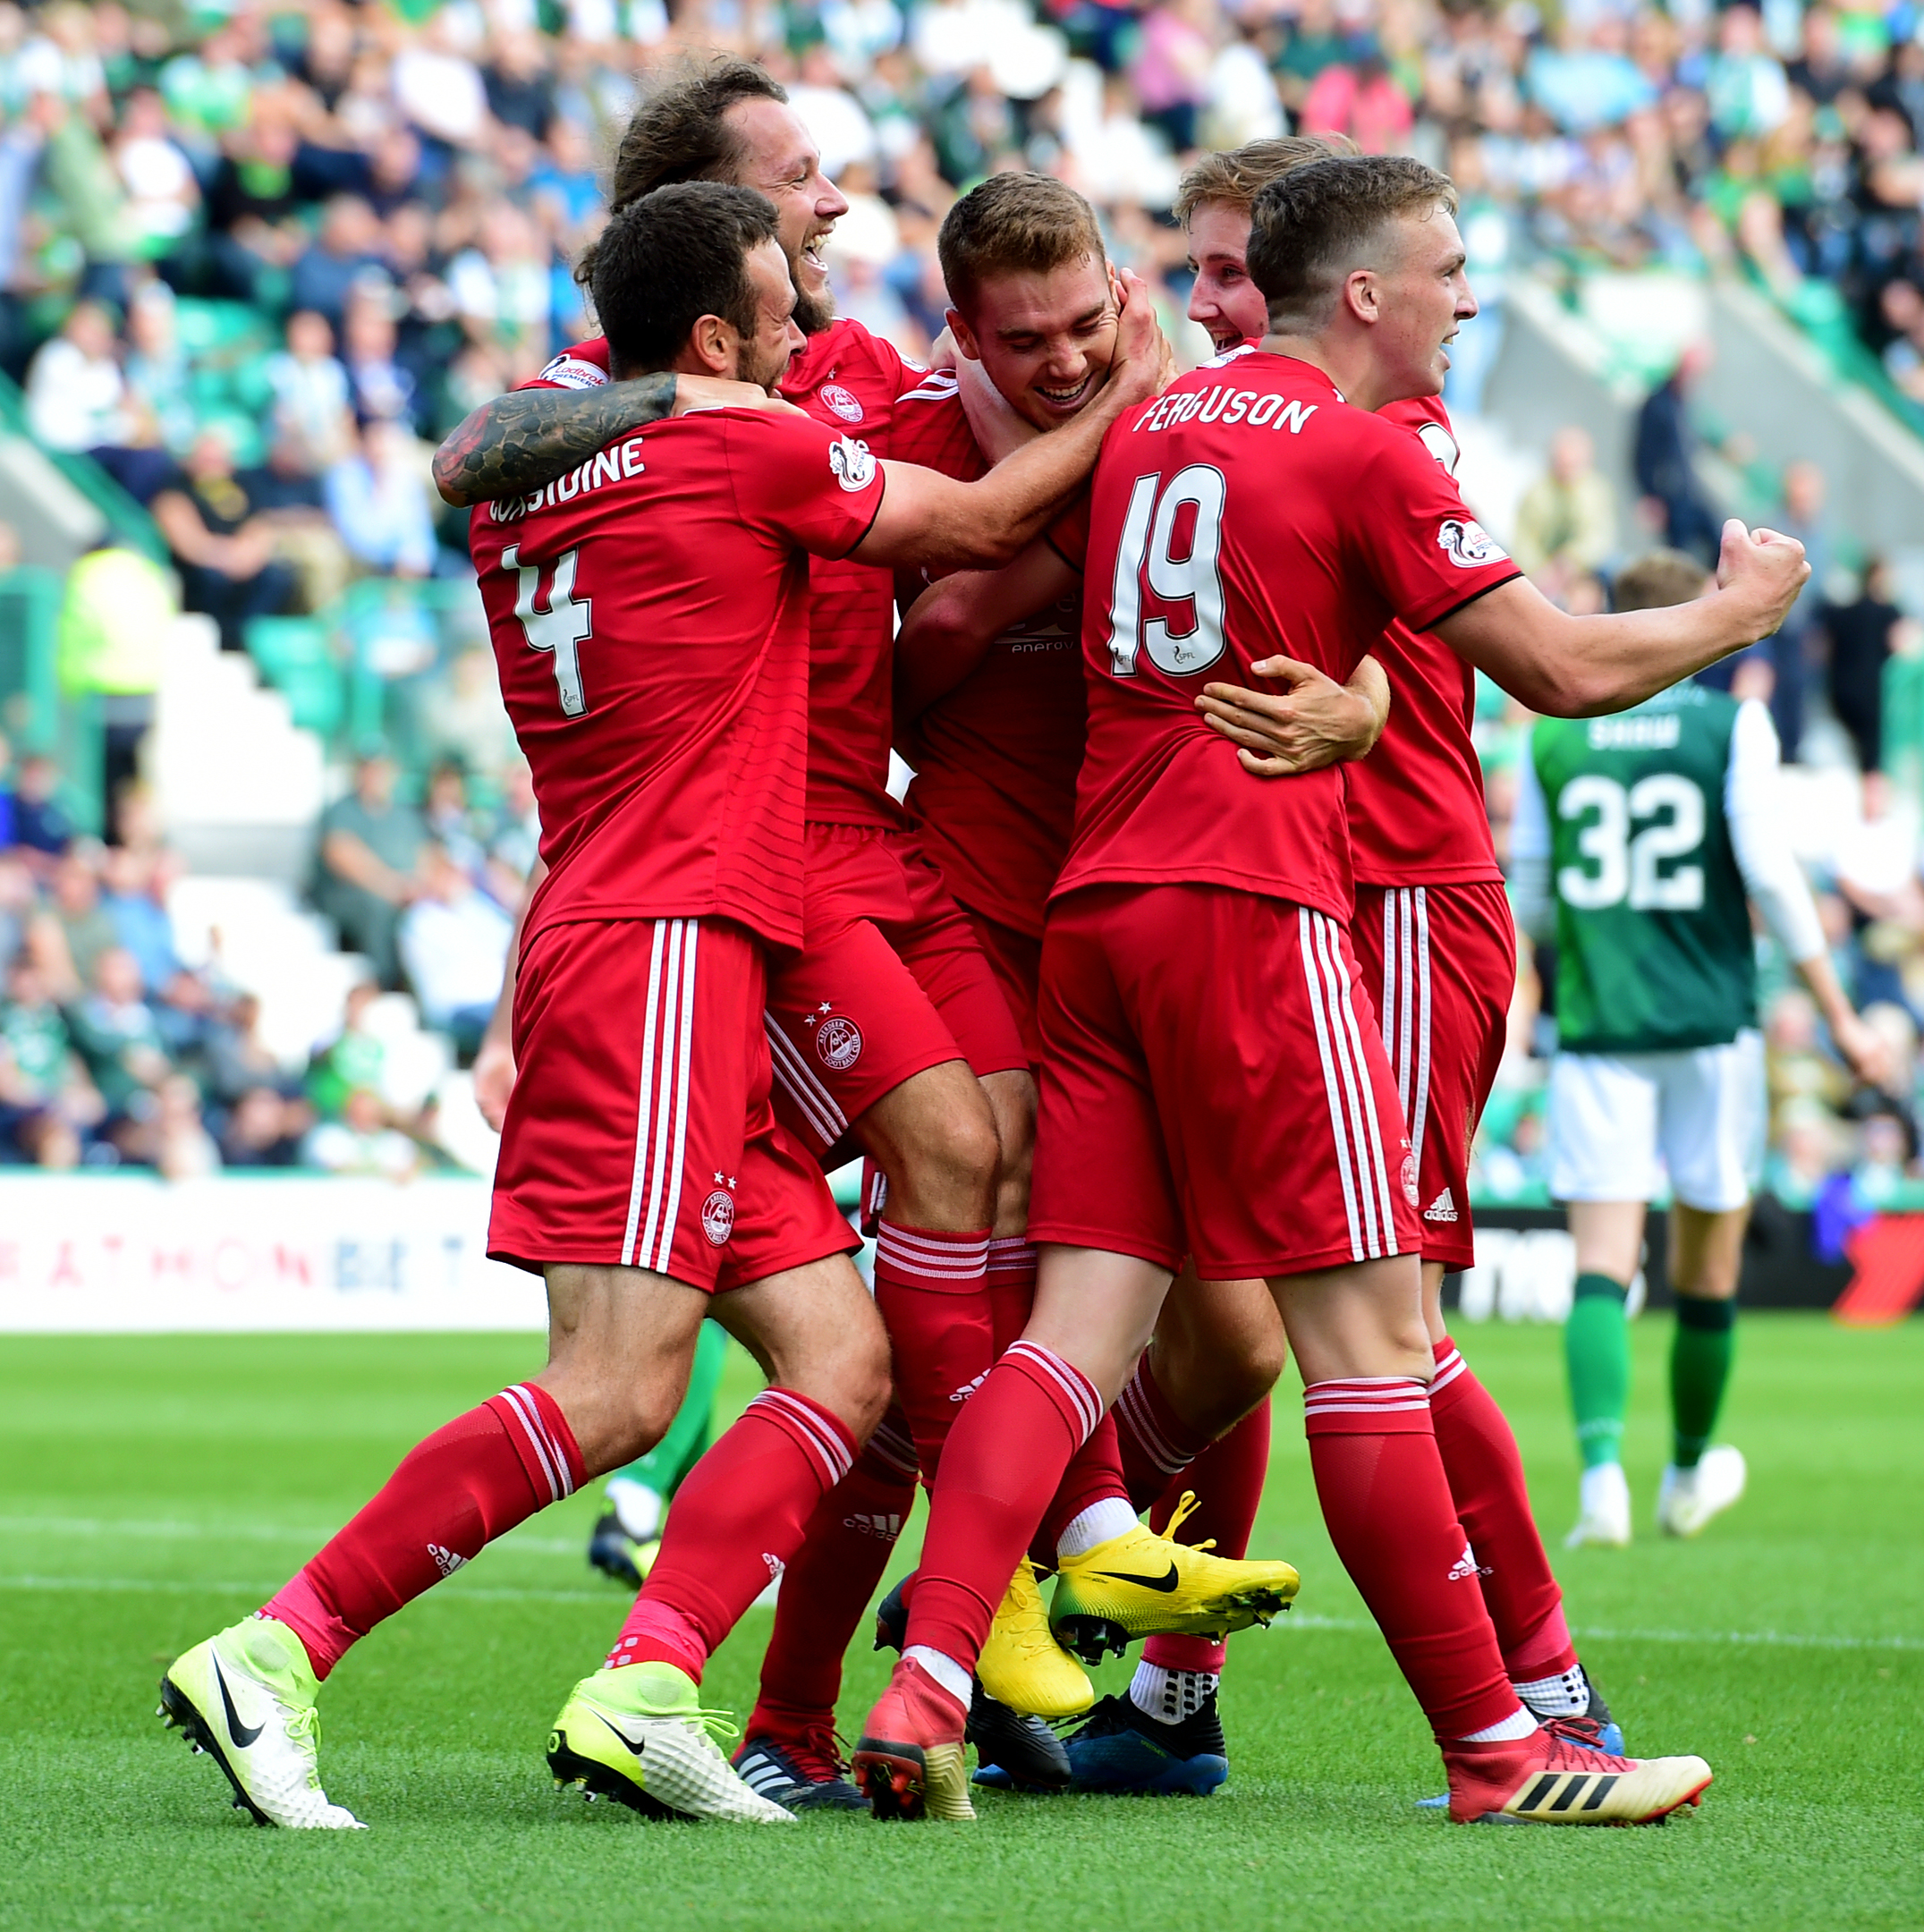 Tommie Hoban is congratulated after bagging his first goal for Aberdeen.